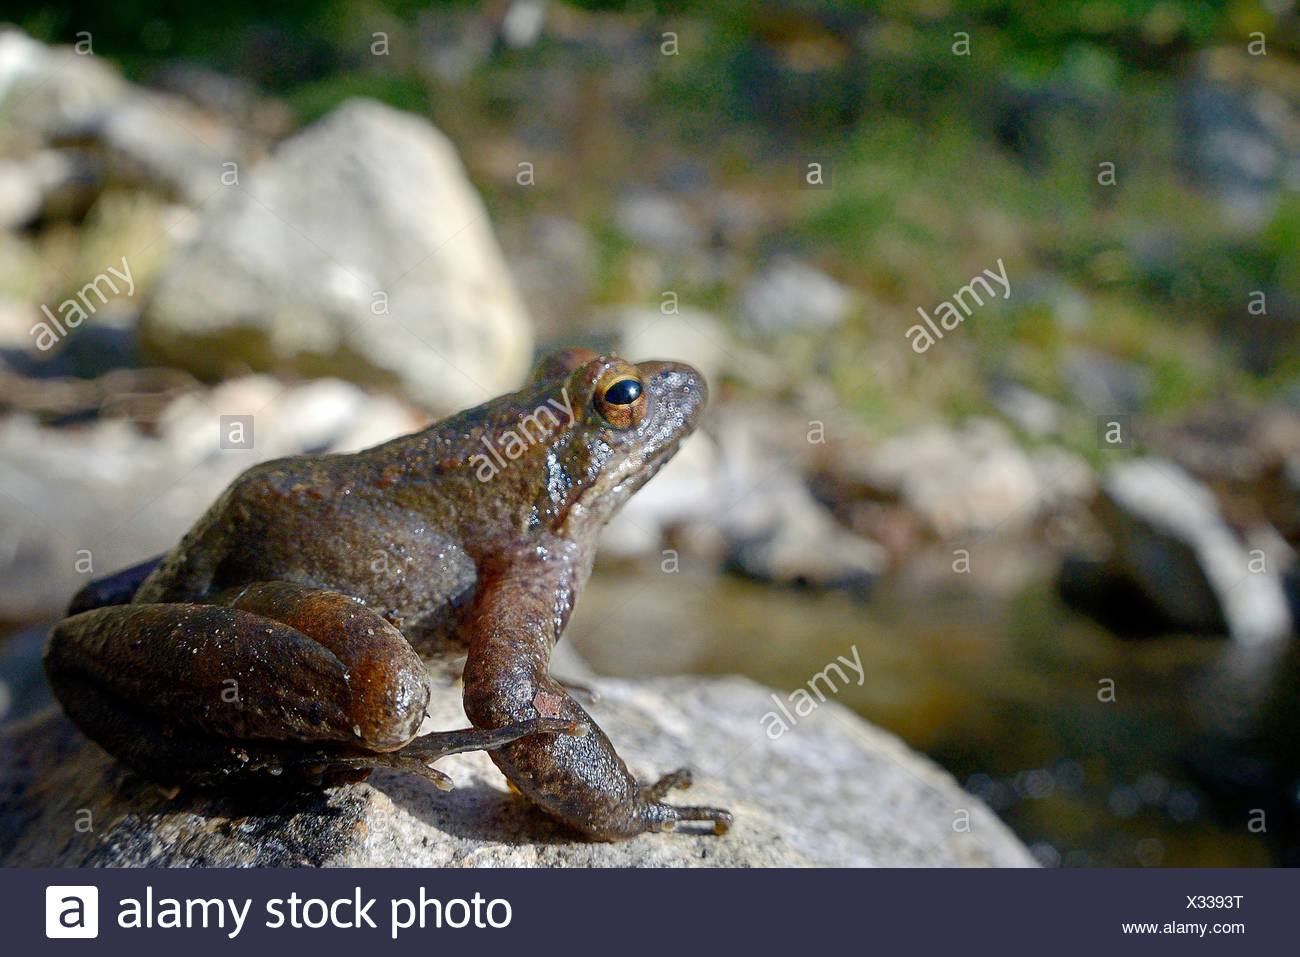 Italian stream frog (Rana italica), Italien stream frog sitting next to mountain creek at Aspromonte National Park, Italy, Calabrien, Ben Aspromonte National Park - Stock Image